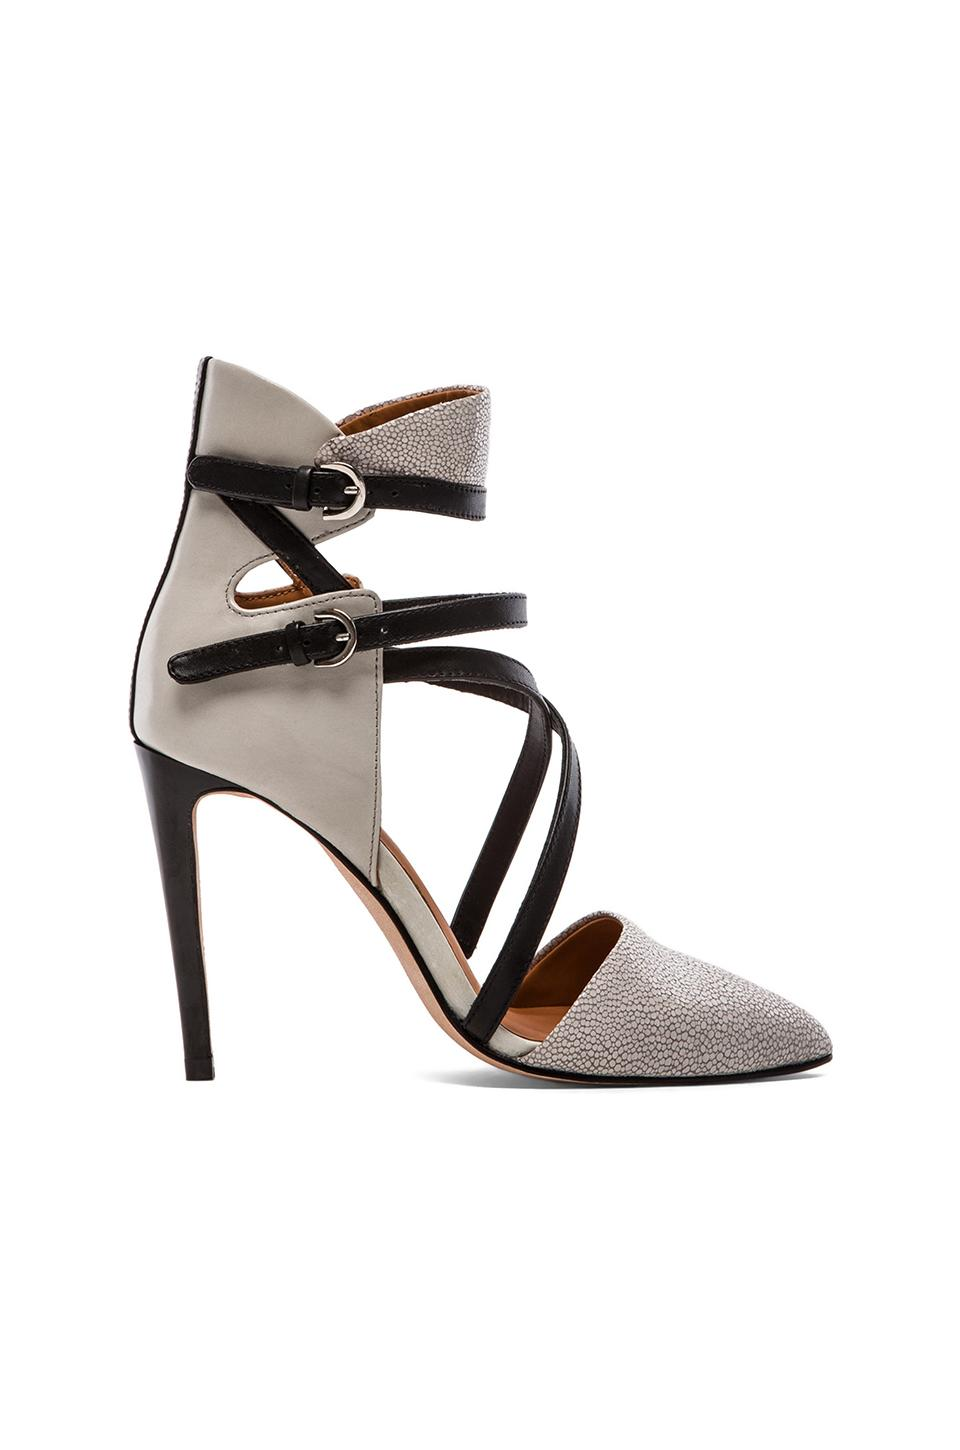 Rebecca Minkoff Raz Heel in Pale Grey Stingray